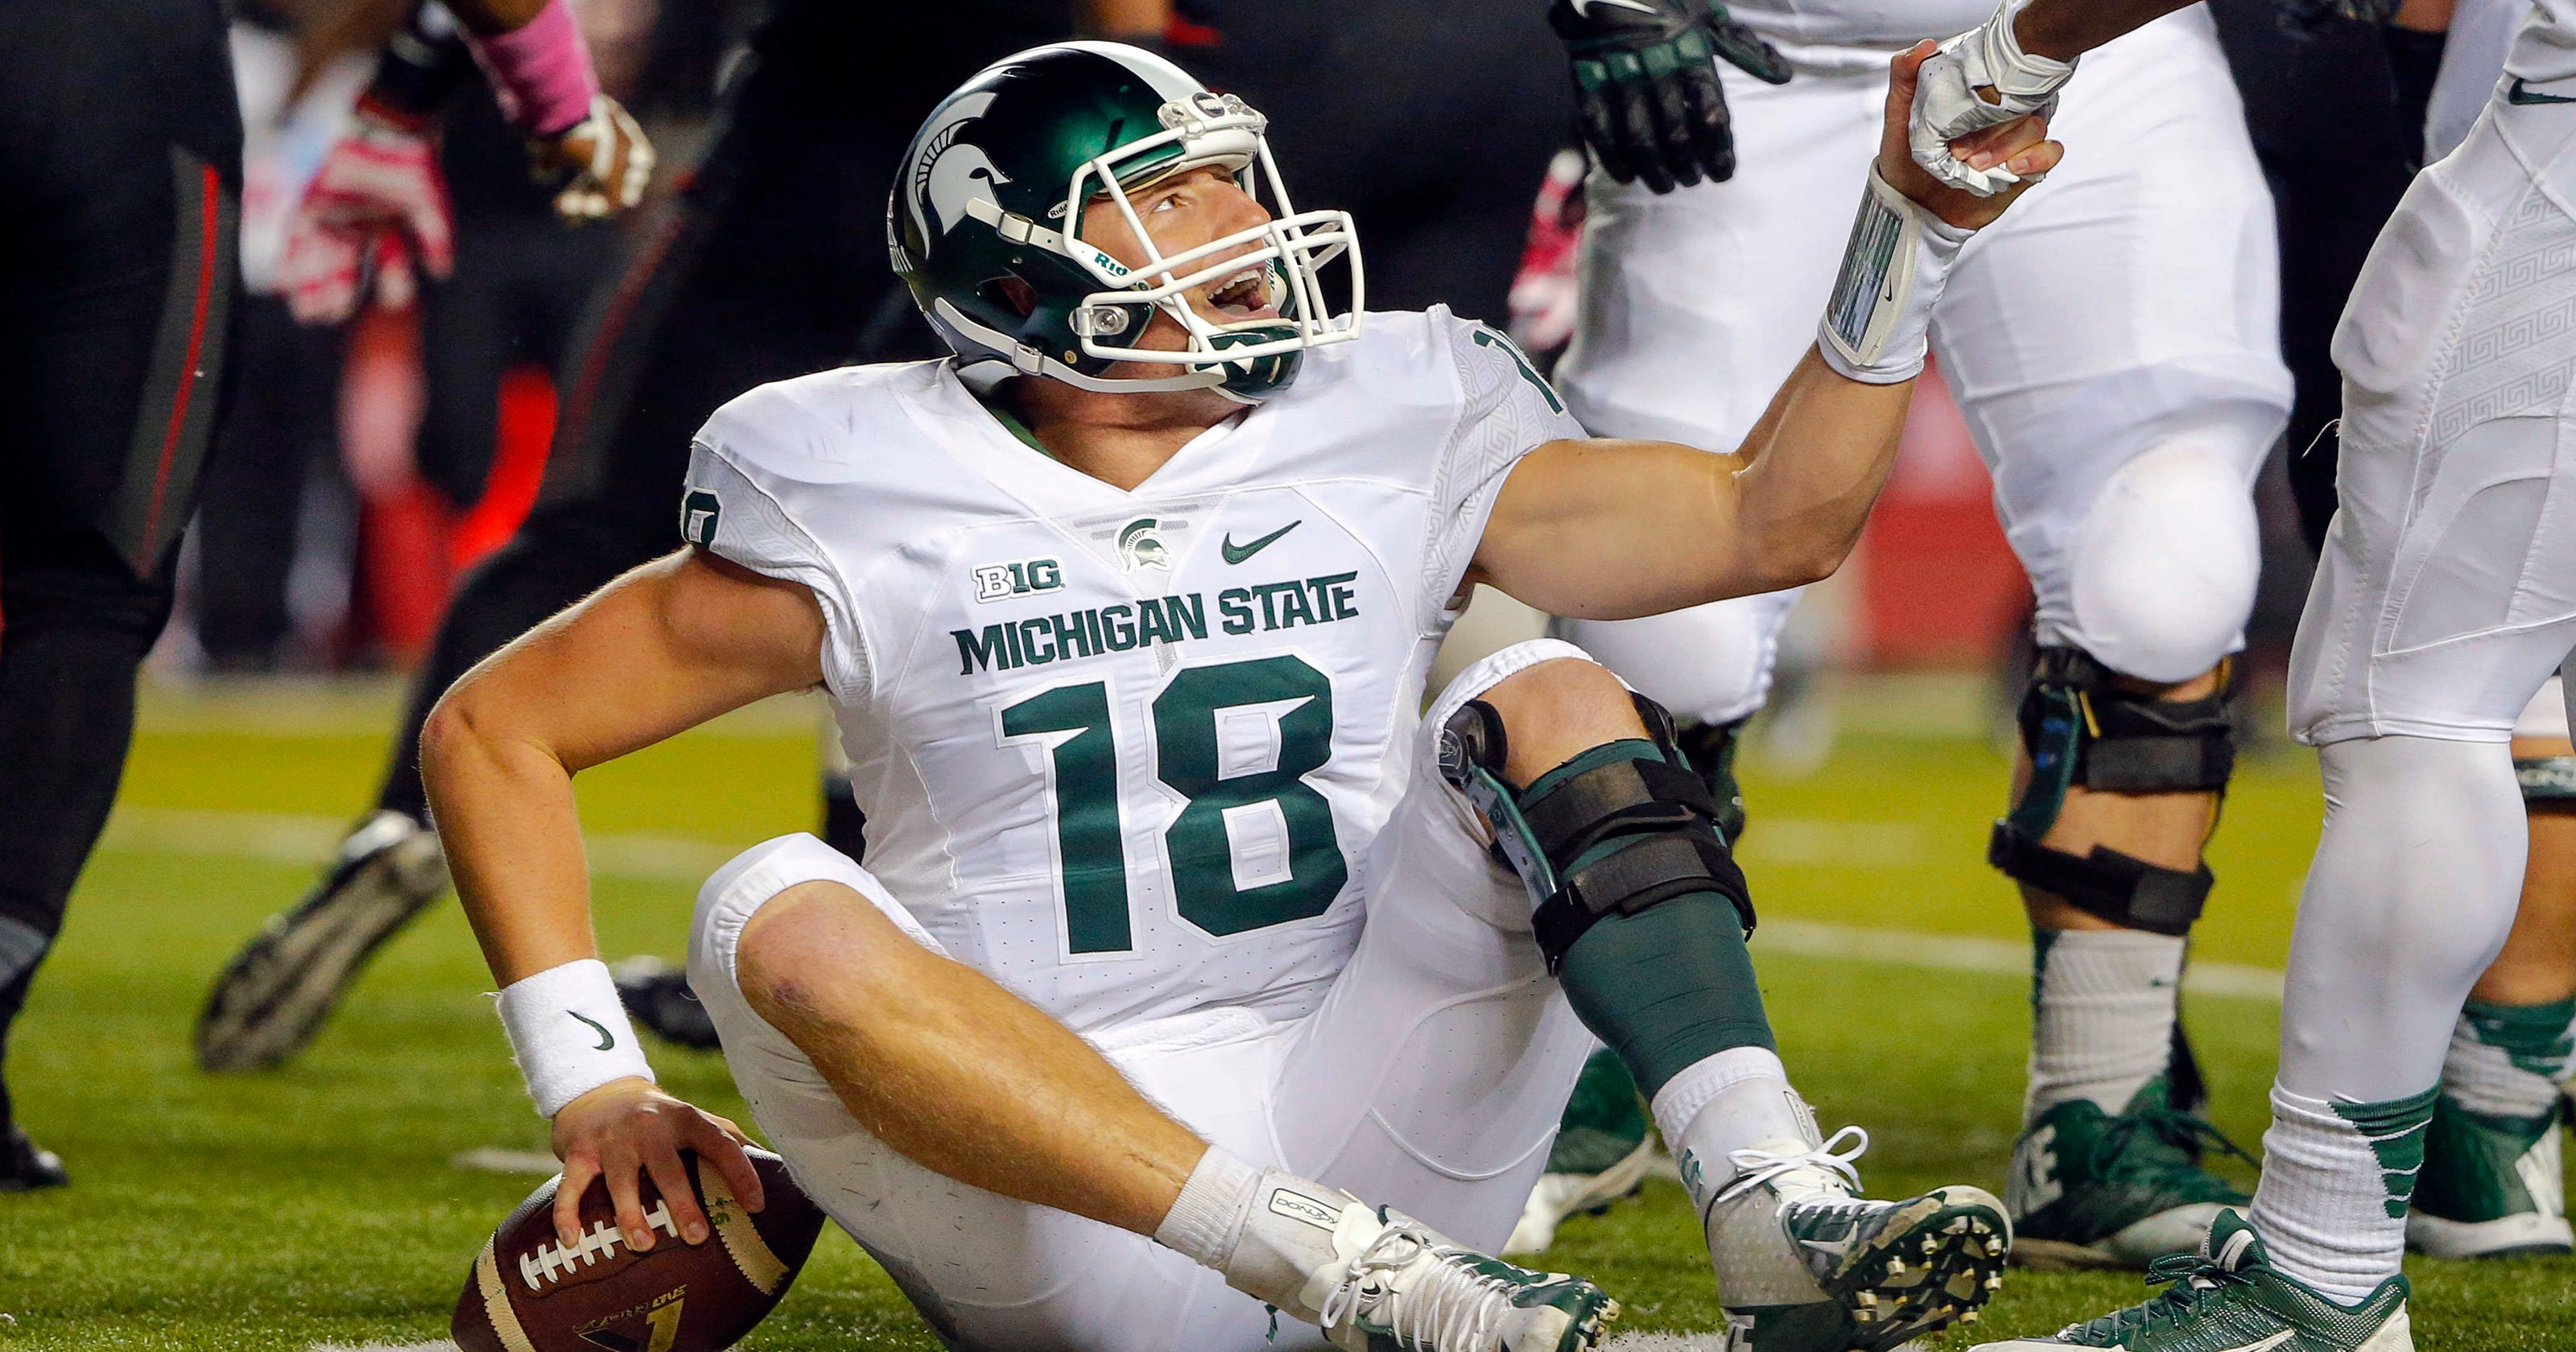 big sale 984fd 6c2ef Couch: Connor Cook will have his NFL chance, draft be damned